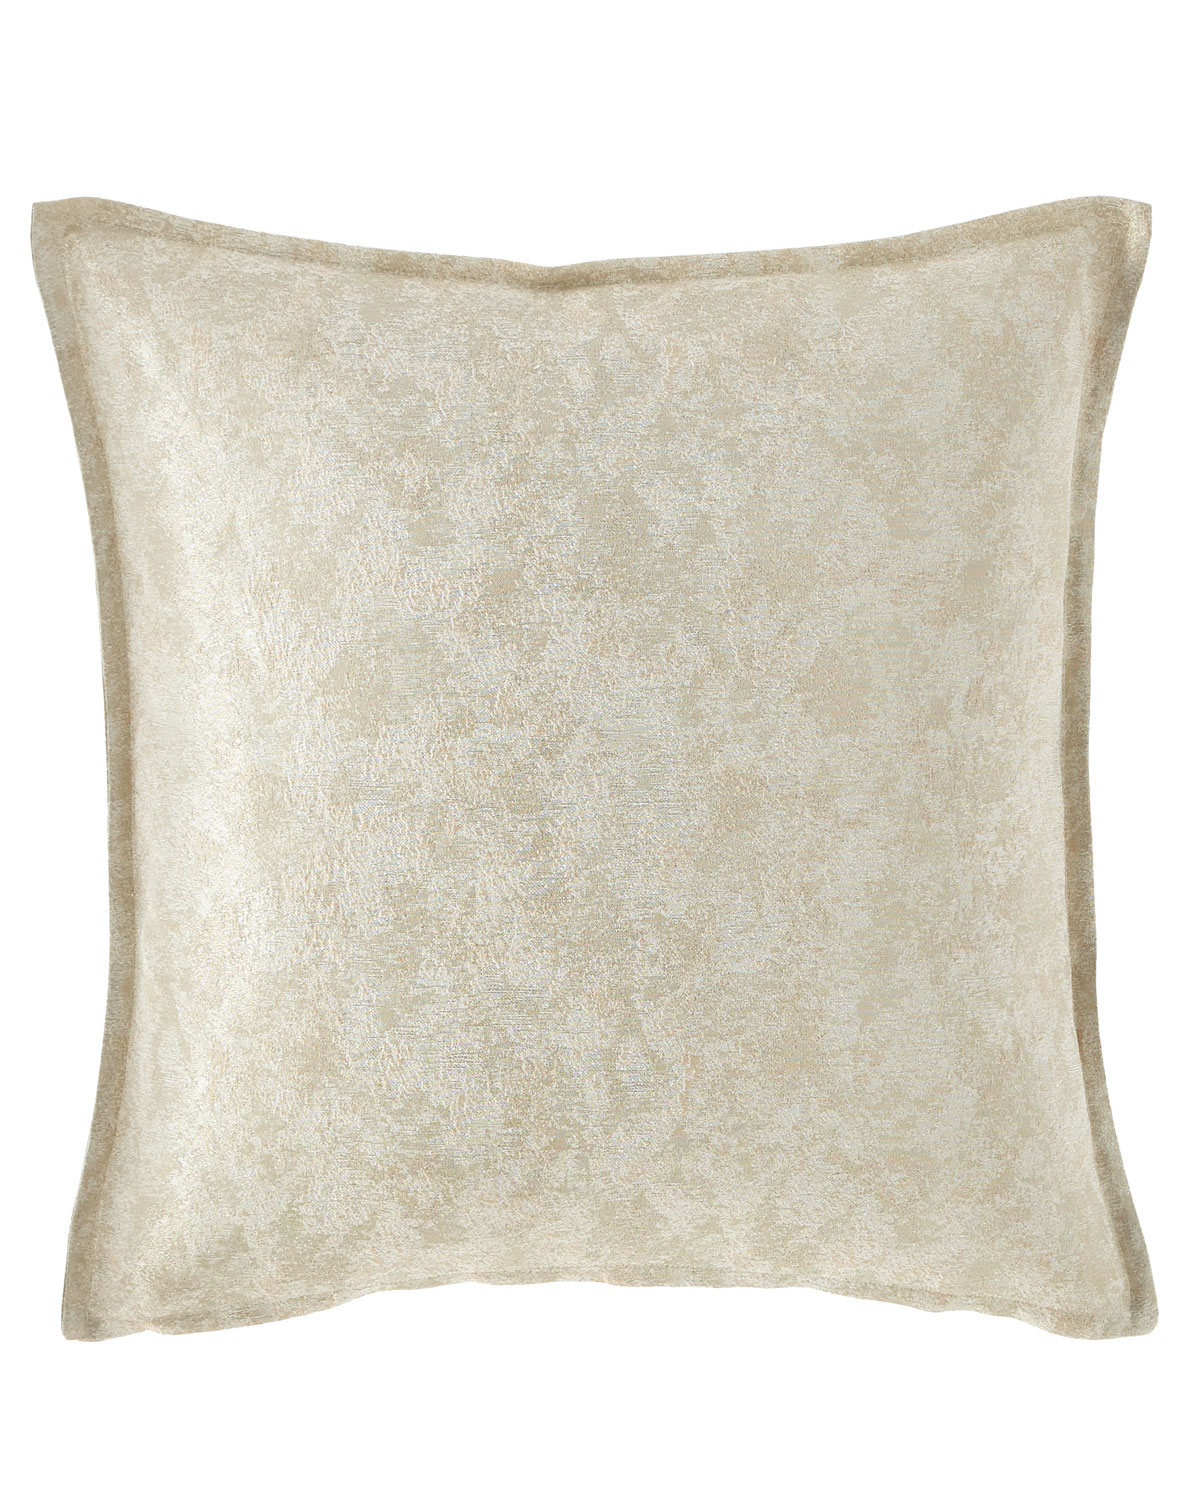 Fino Lino Linen & Lace Pillows LUXE THROW PILLOW